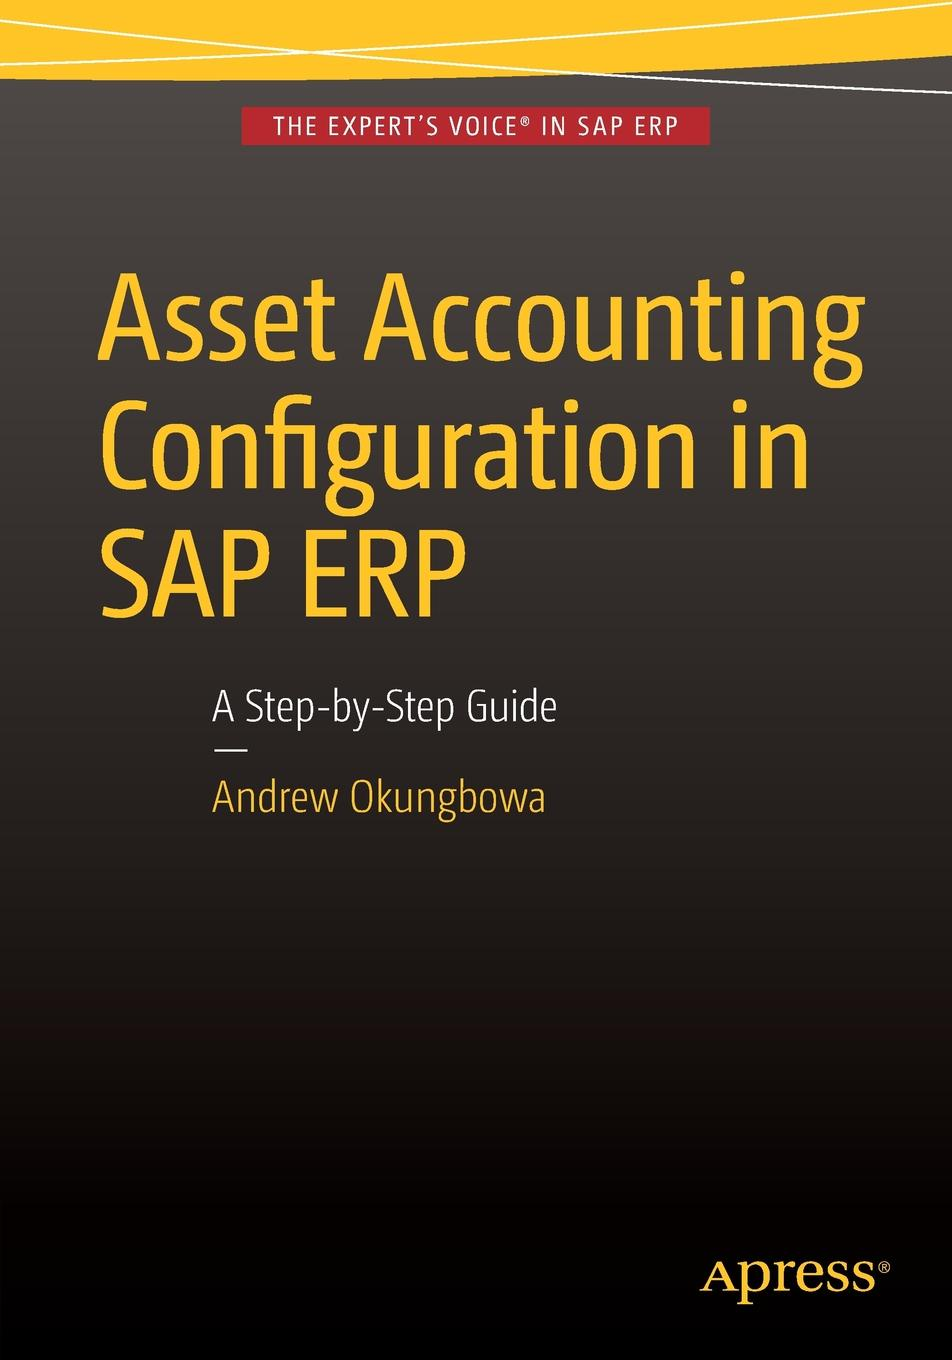 Фото - Andrew Okungbowa Asset Accounting Configuration in SAP ERP. A Step-by-Step Guide kapil sharma configuring sap erp sales and distribution